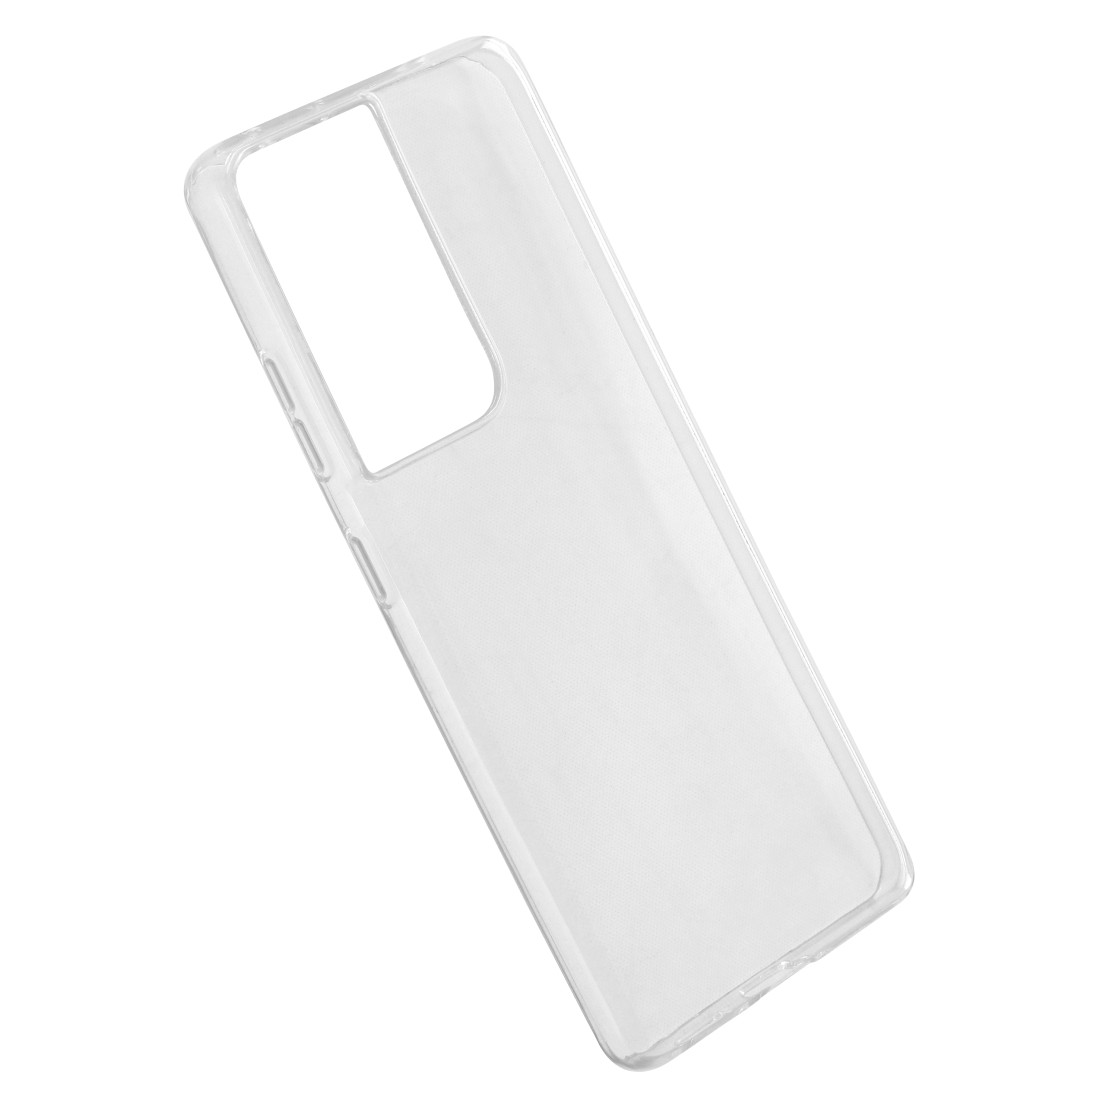 "abx4 High-Res Image4 - Hama, Cover ""Crystal Clear"" voor Samsung Galaxy S21 Ultra (5G), transparant"